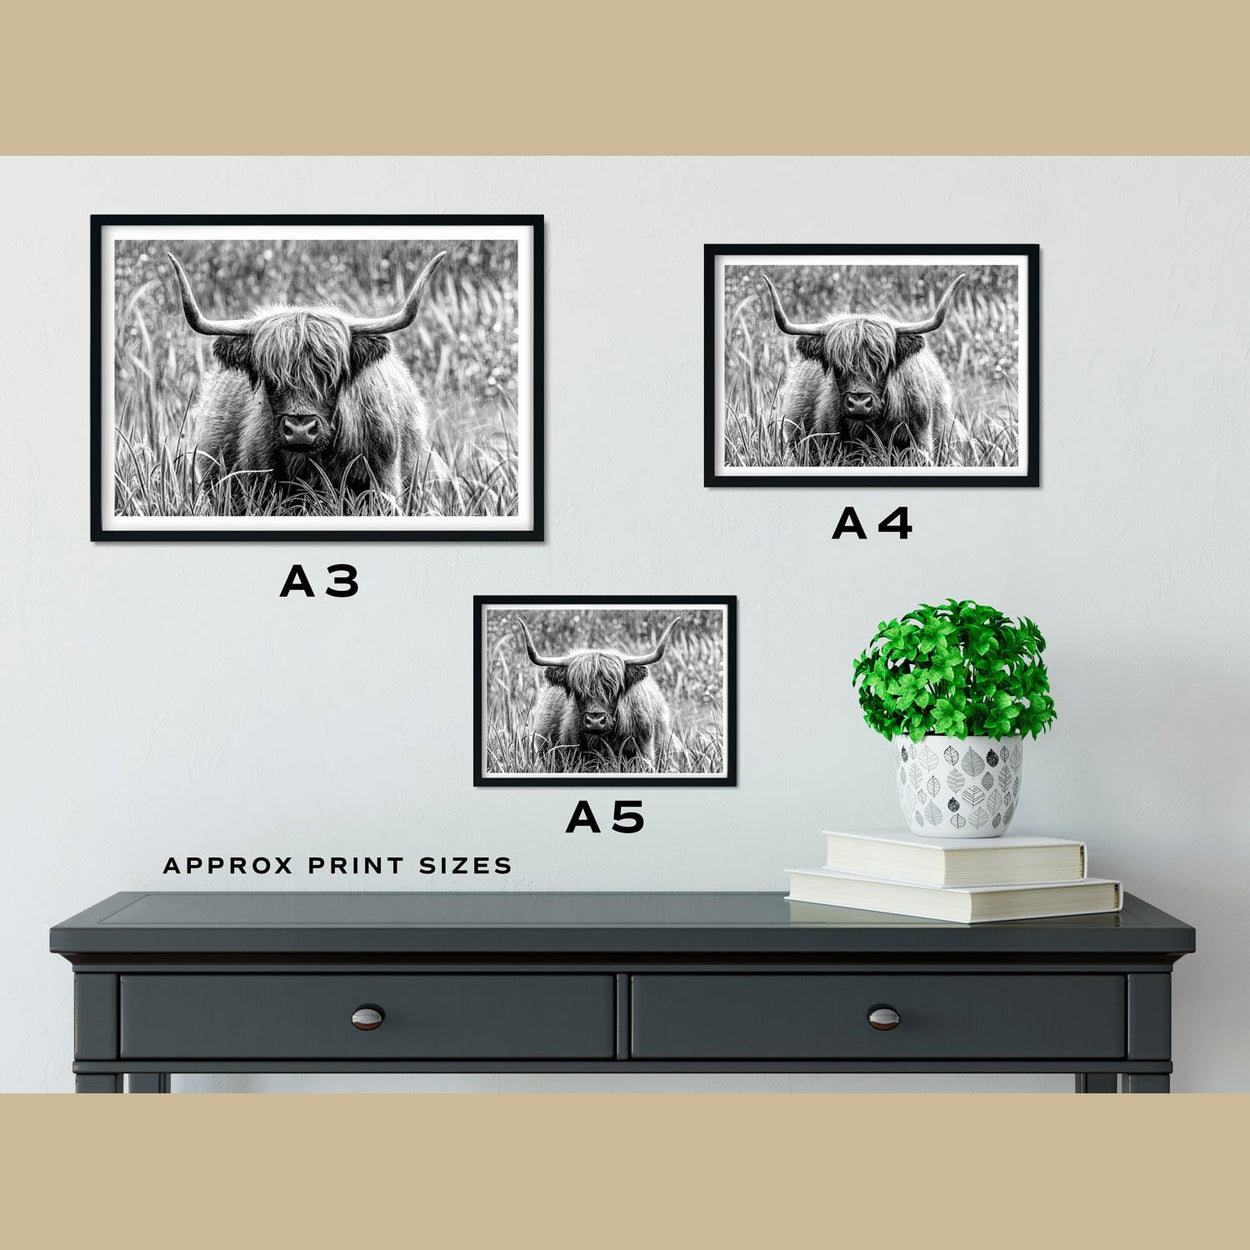 Highland Cow Prints Size Comparison - The Thriving Wild